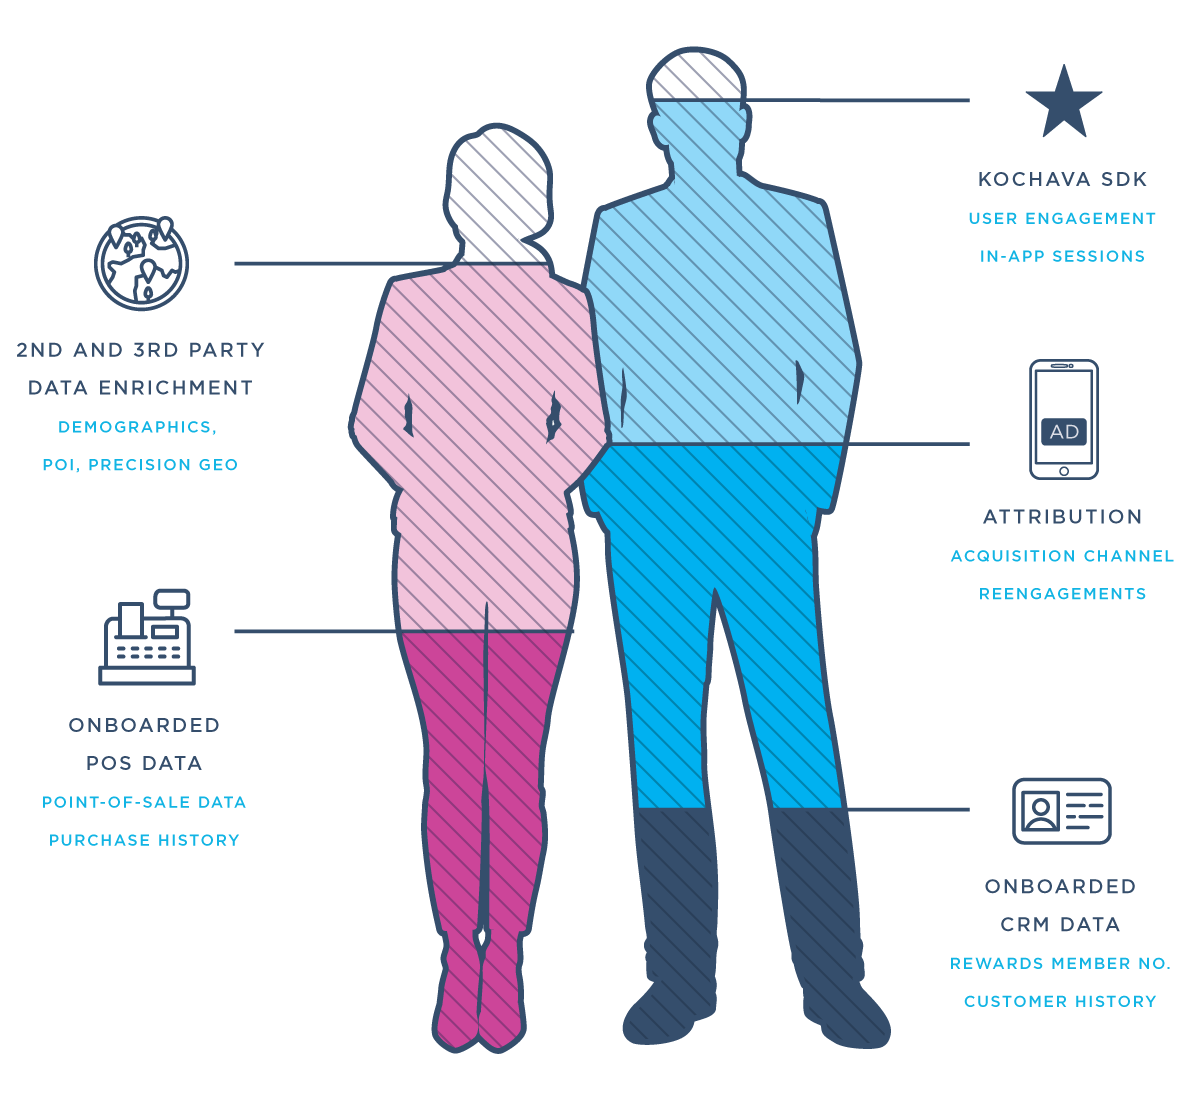 Male and female figures representing Kochava audience segmentation and syndication.